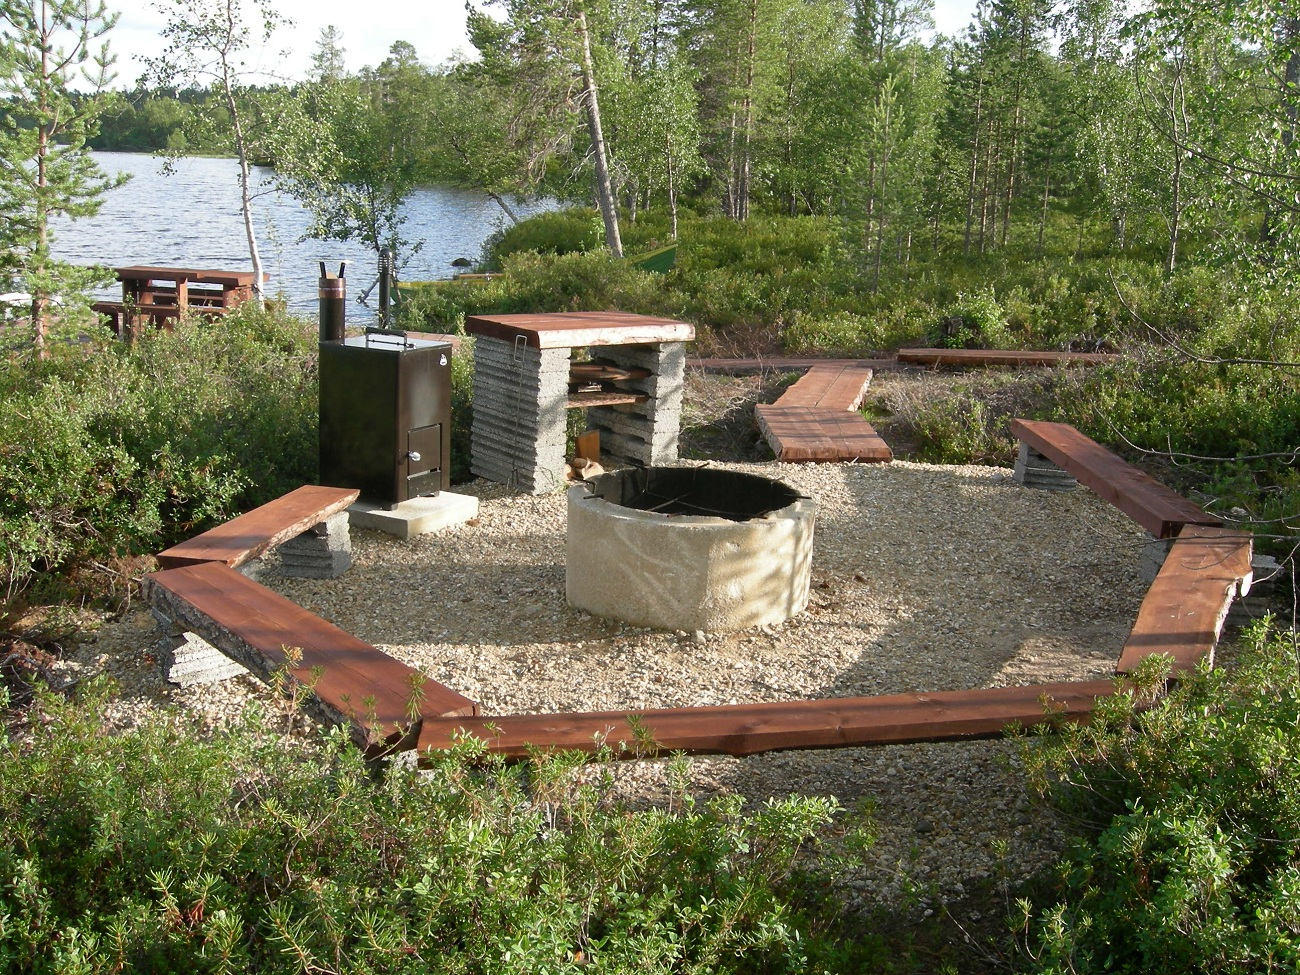 1000 Images About Nuotiopaikka On Pinterest Fire Pits